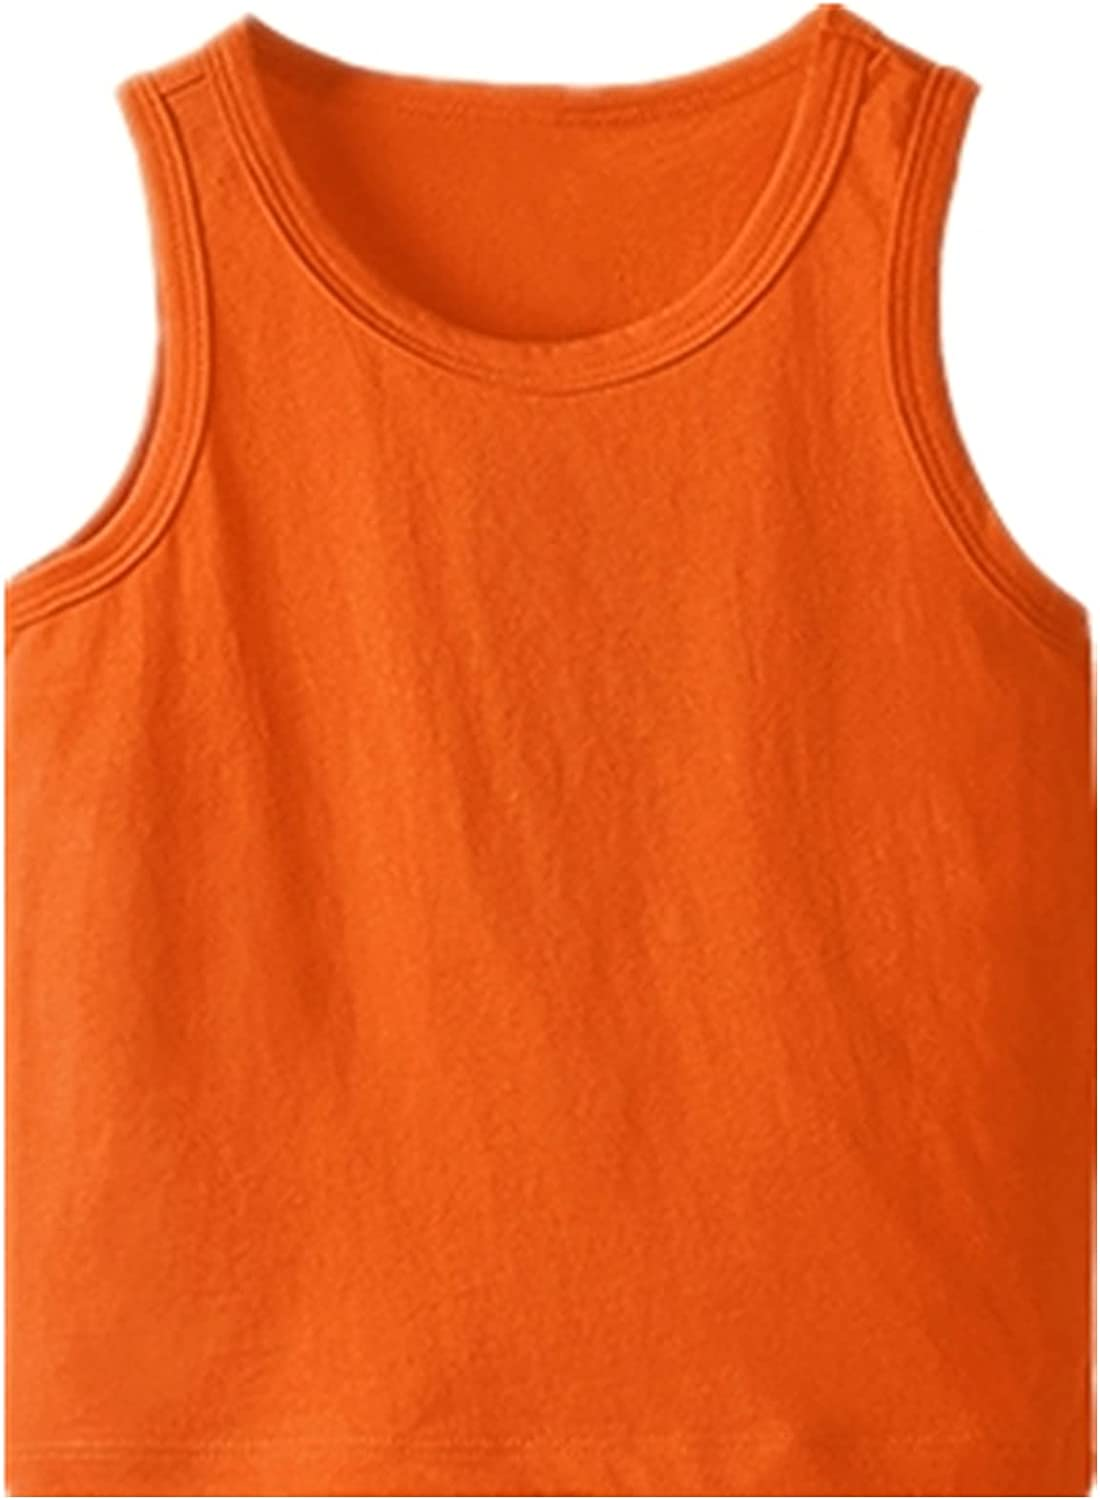 Maylofuer Little Boys Tank Top Solid Color O-Neck Summer Casual Cotton Vest Shirt